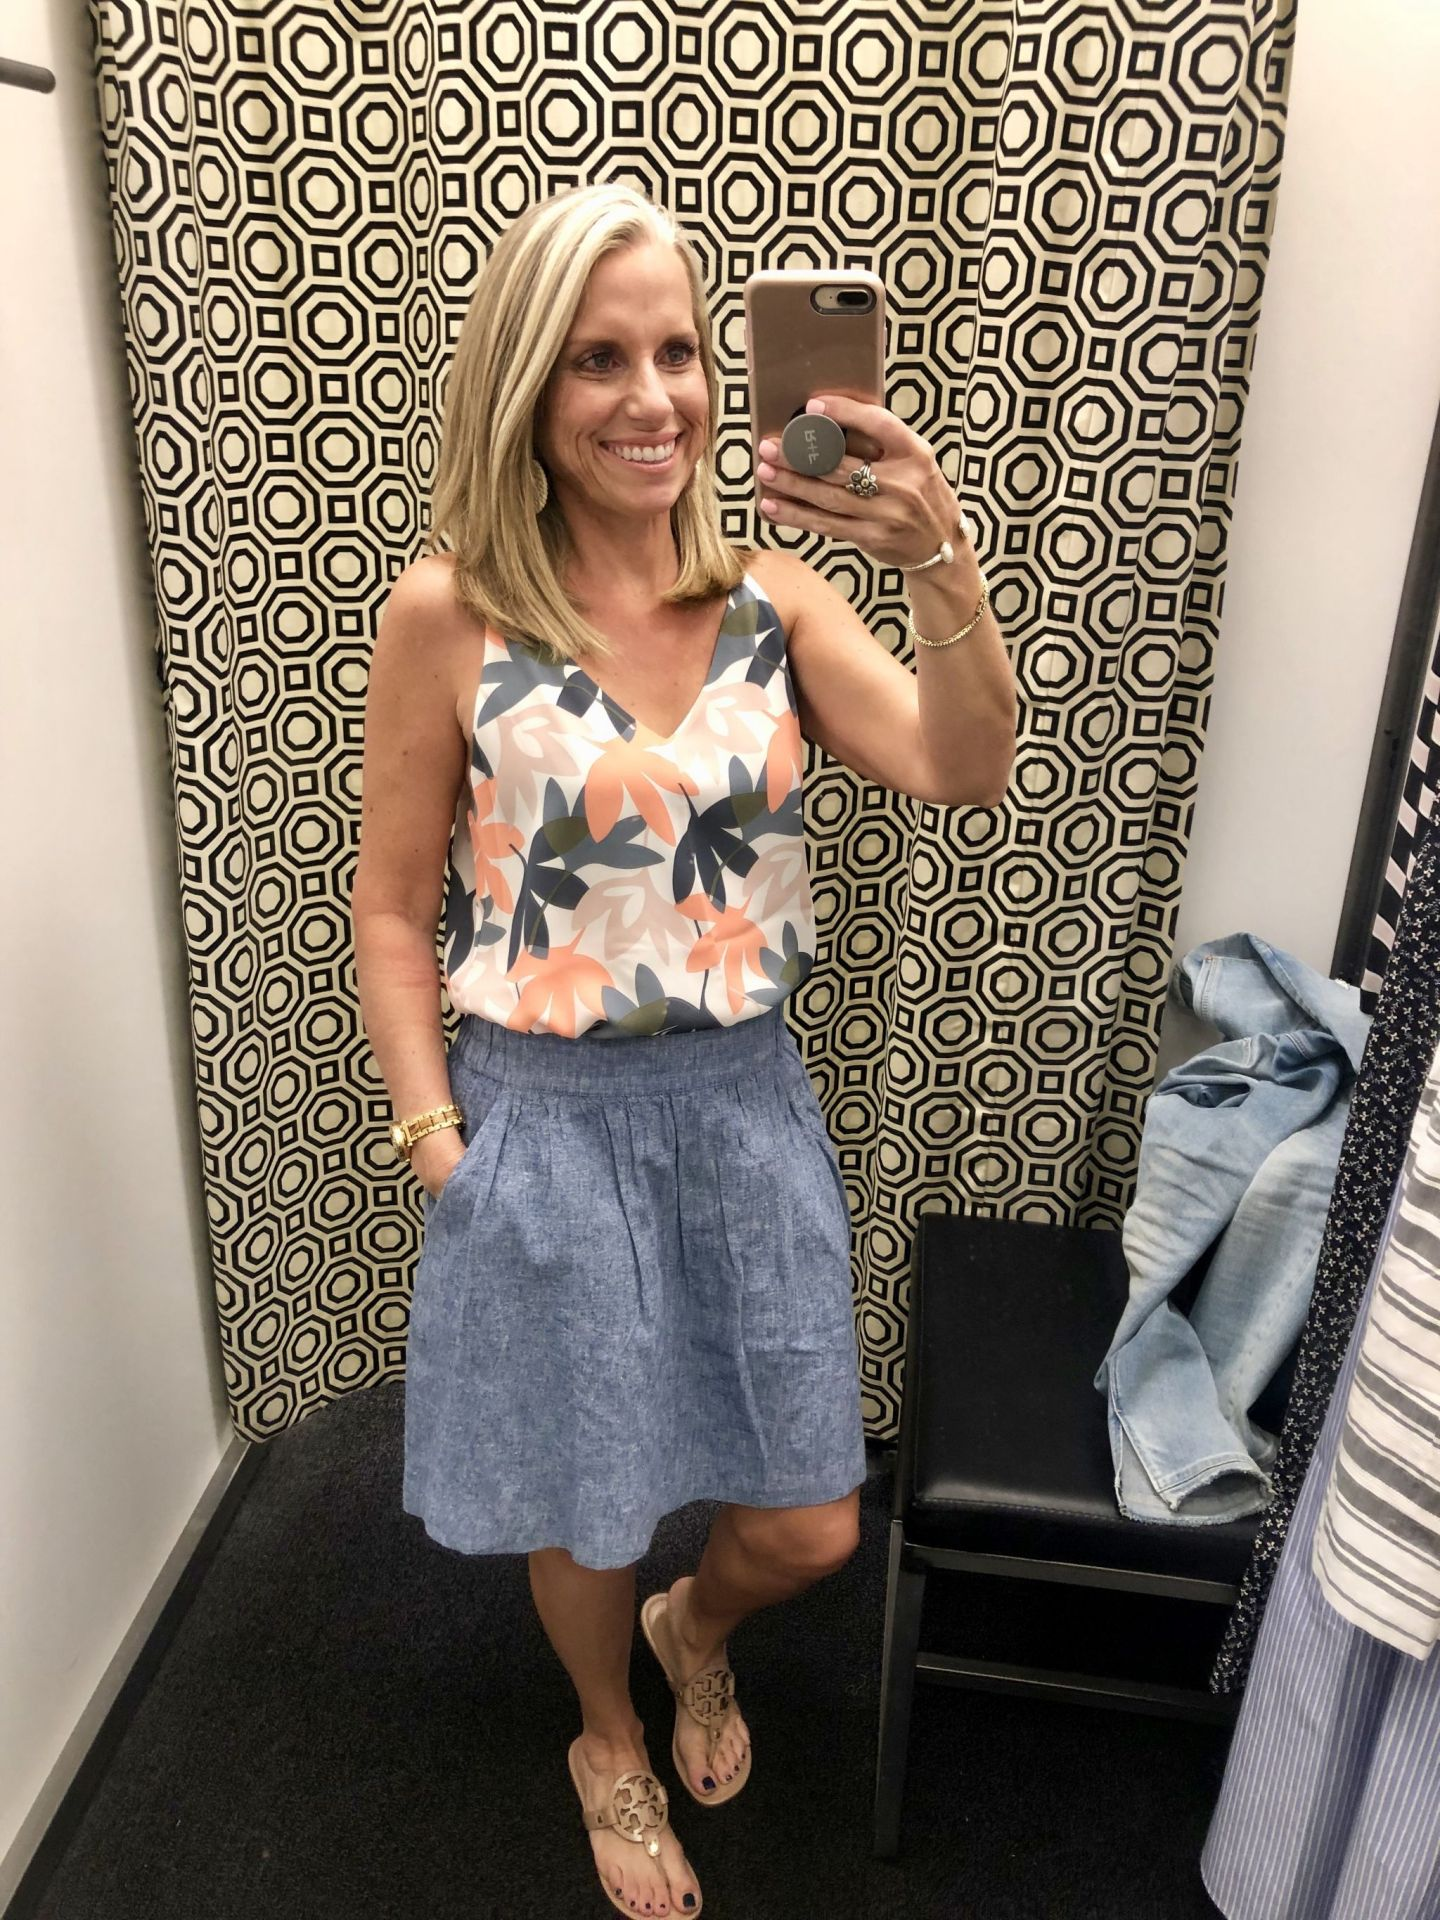 Loft outlet cami & skirt, Coast to Coast